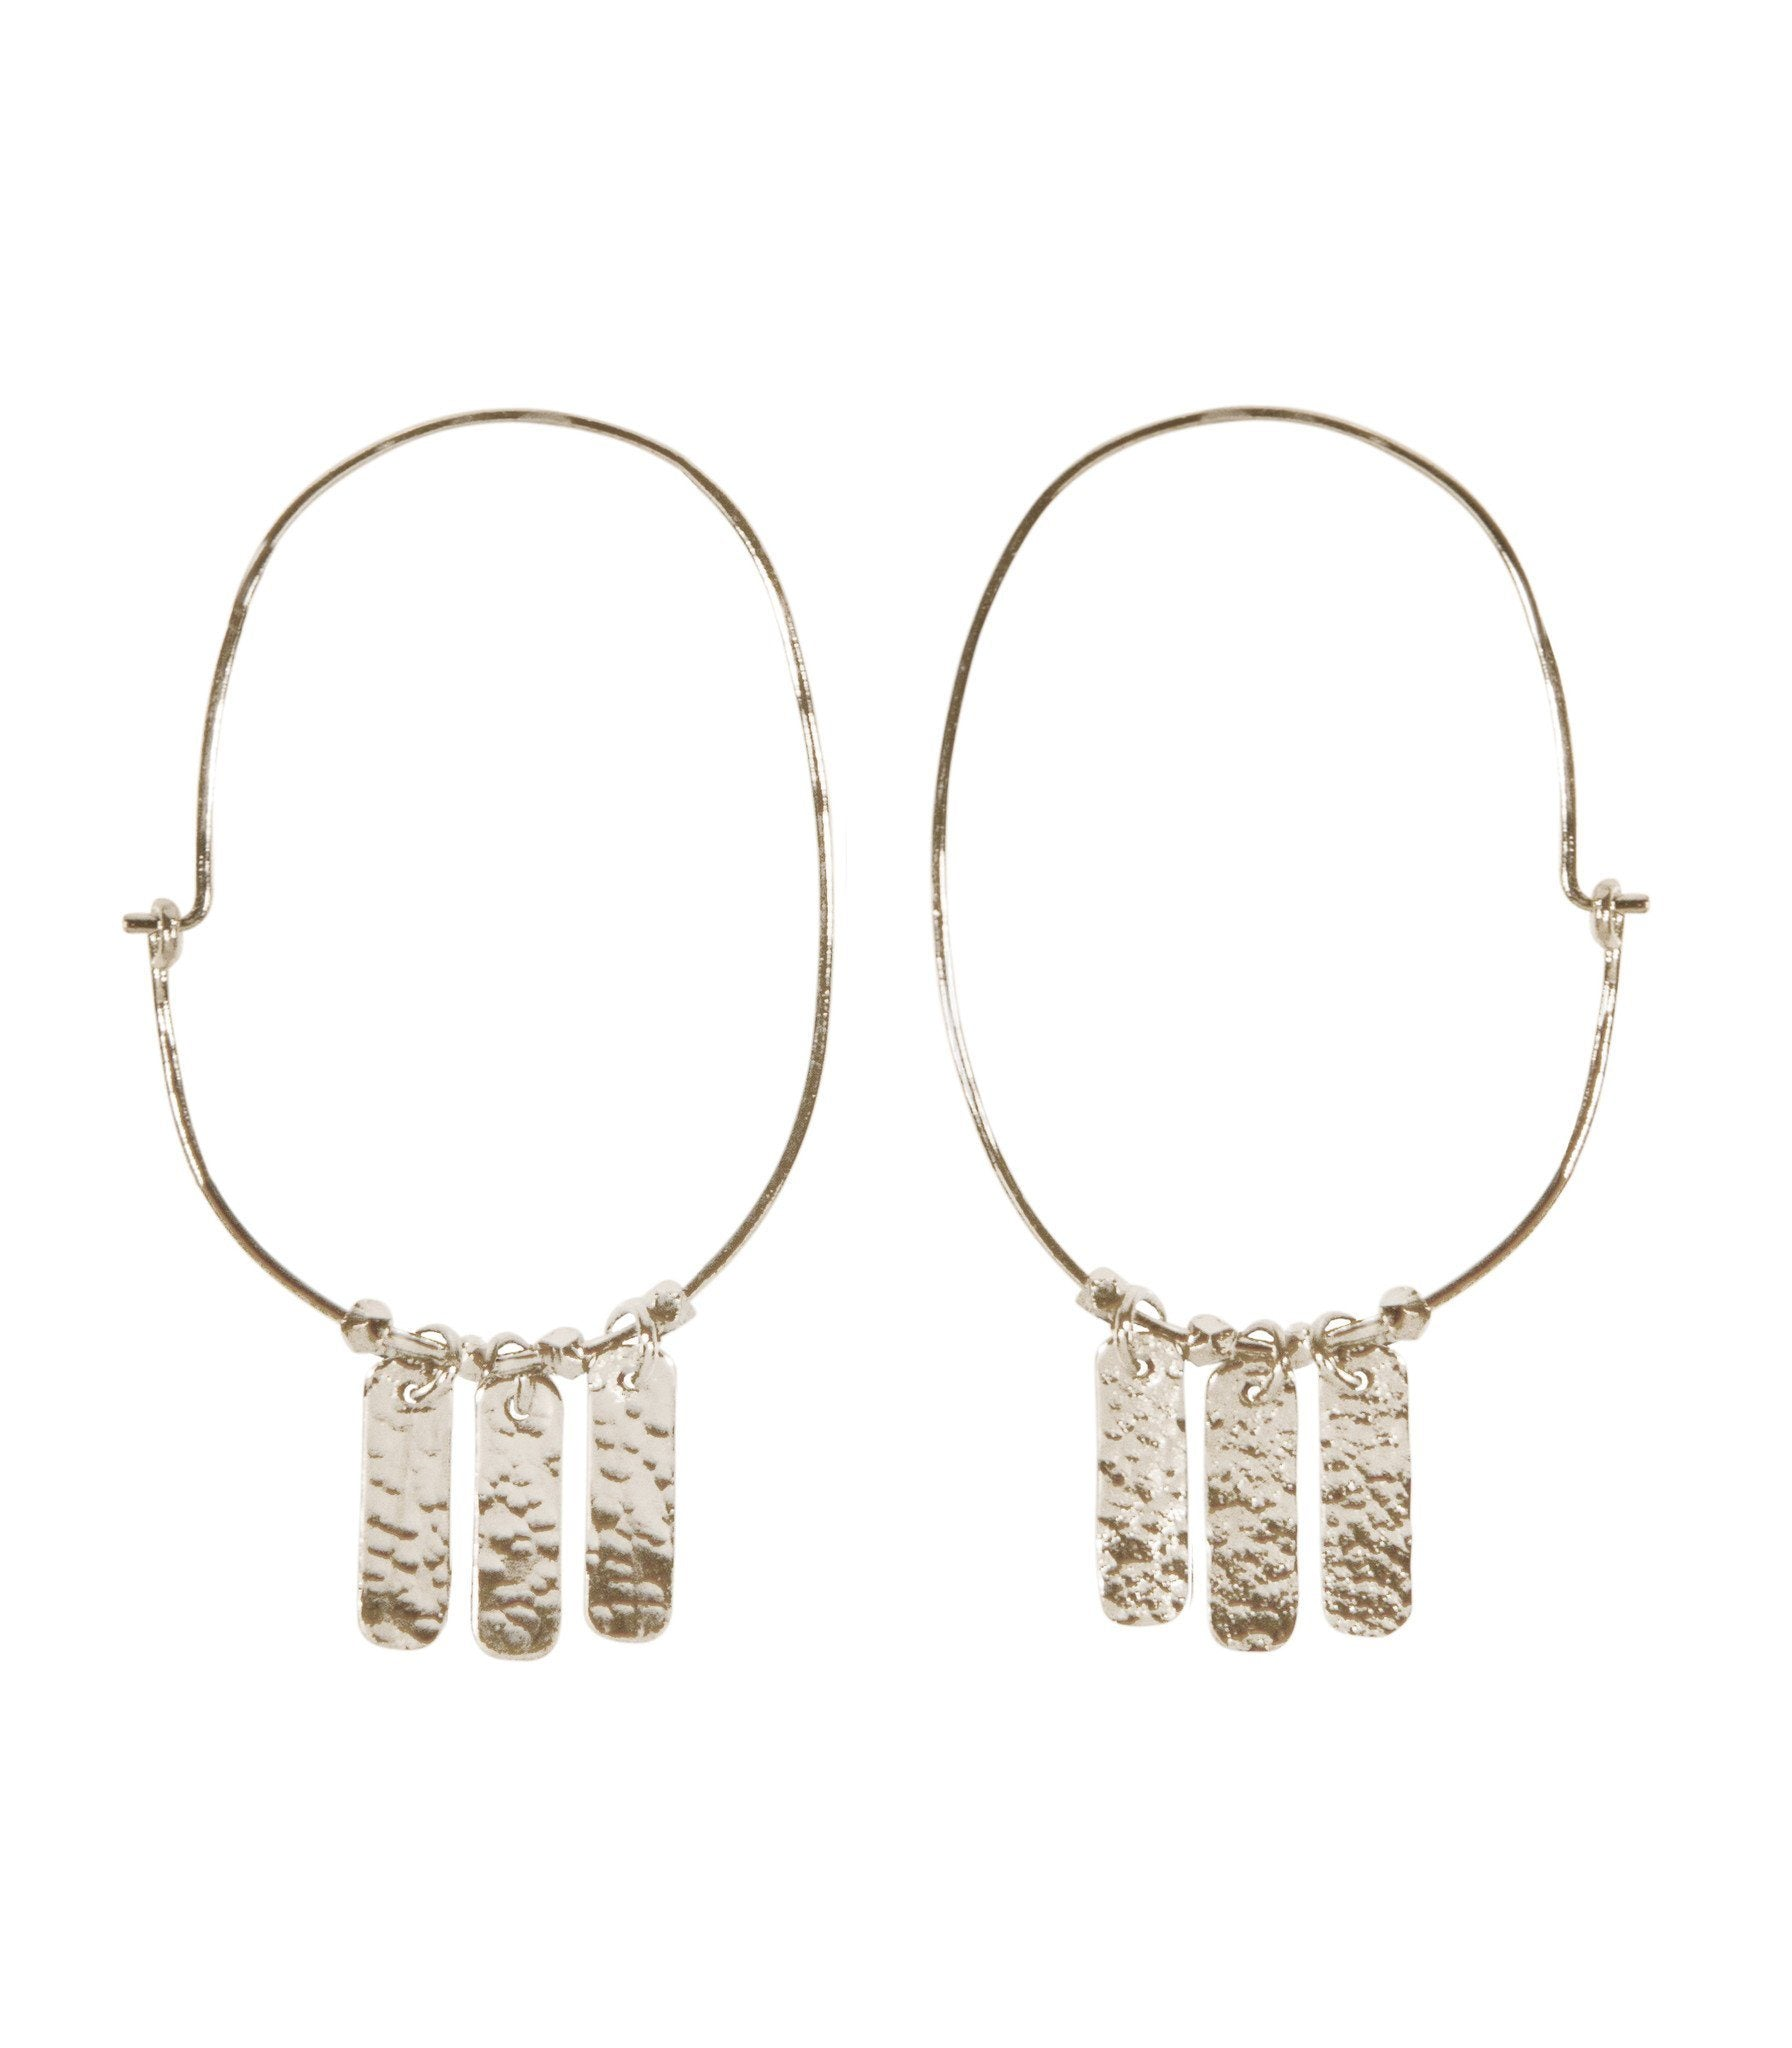 Handcrafted Silver Oval Drop Earrings with Hammered Fringe